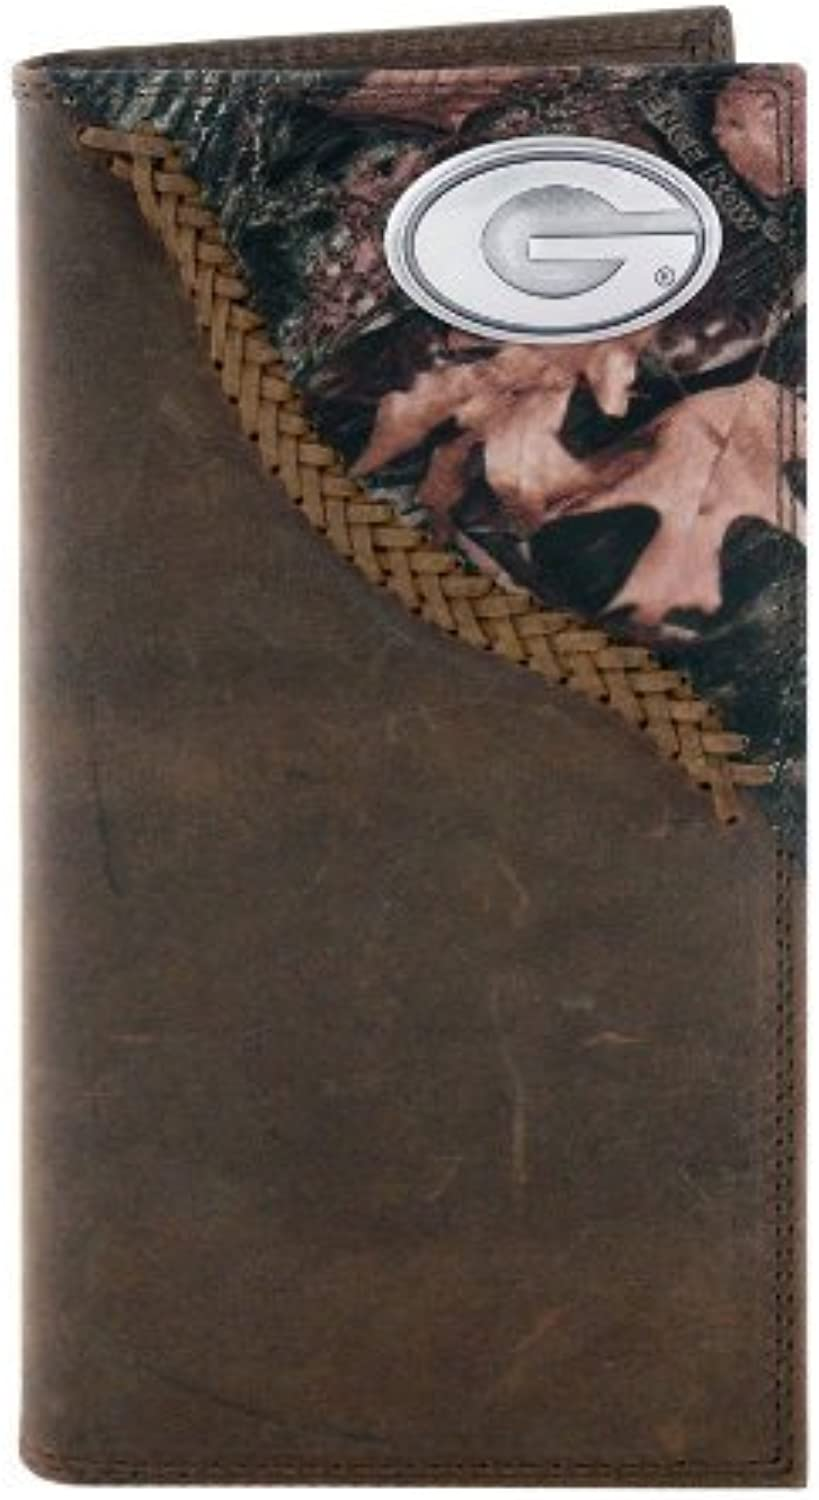 NCAA Georgia Bulldogs Camouflage Leather Roper Concho Wallet, One Größe by ZEP-PRO